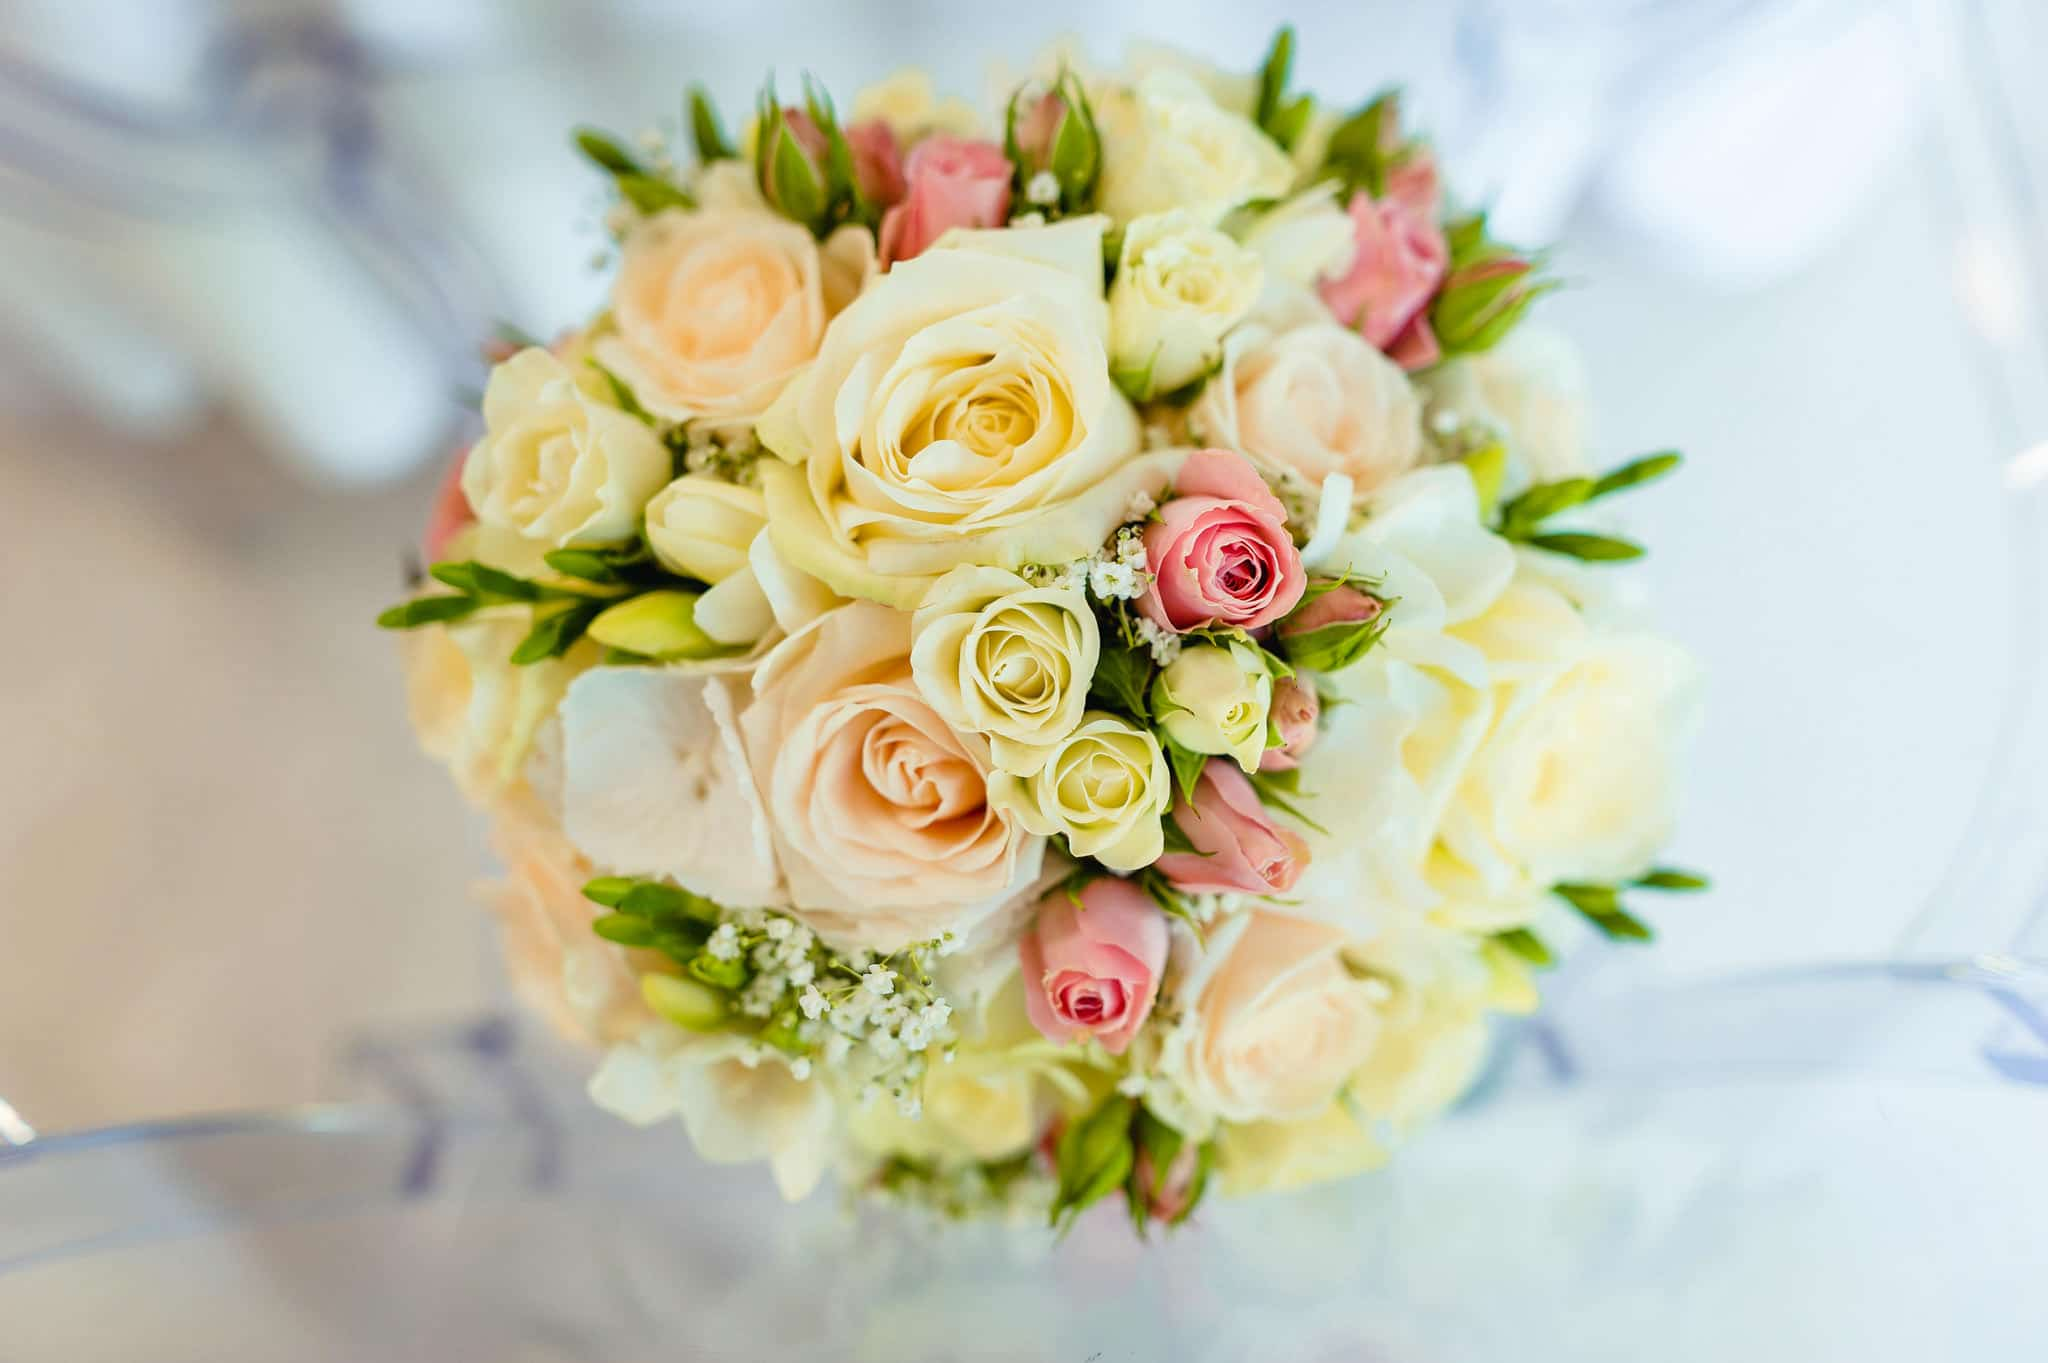 Wedding at Redhouse Barn in Stoke Prior, Worcestershire 33